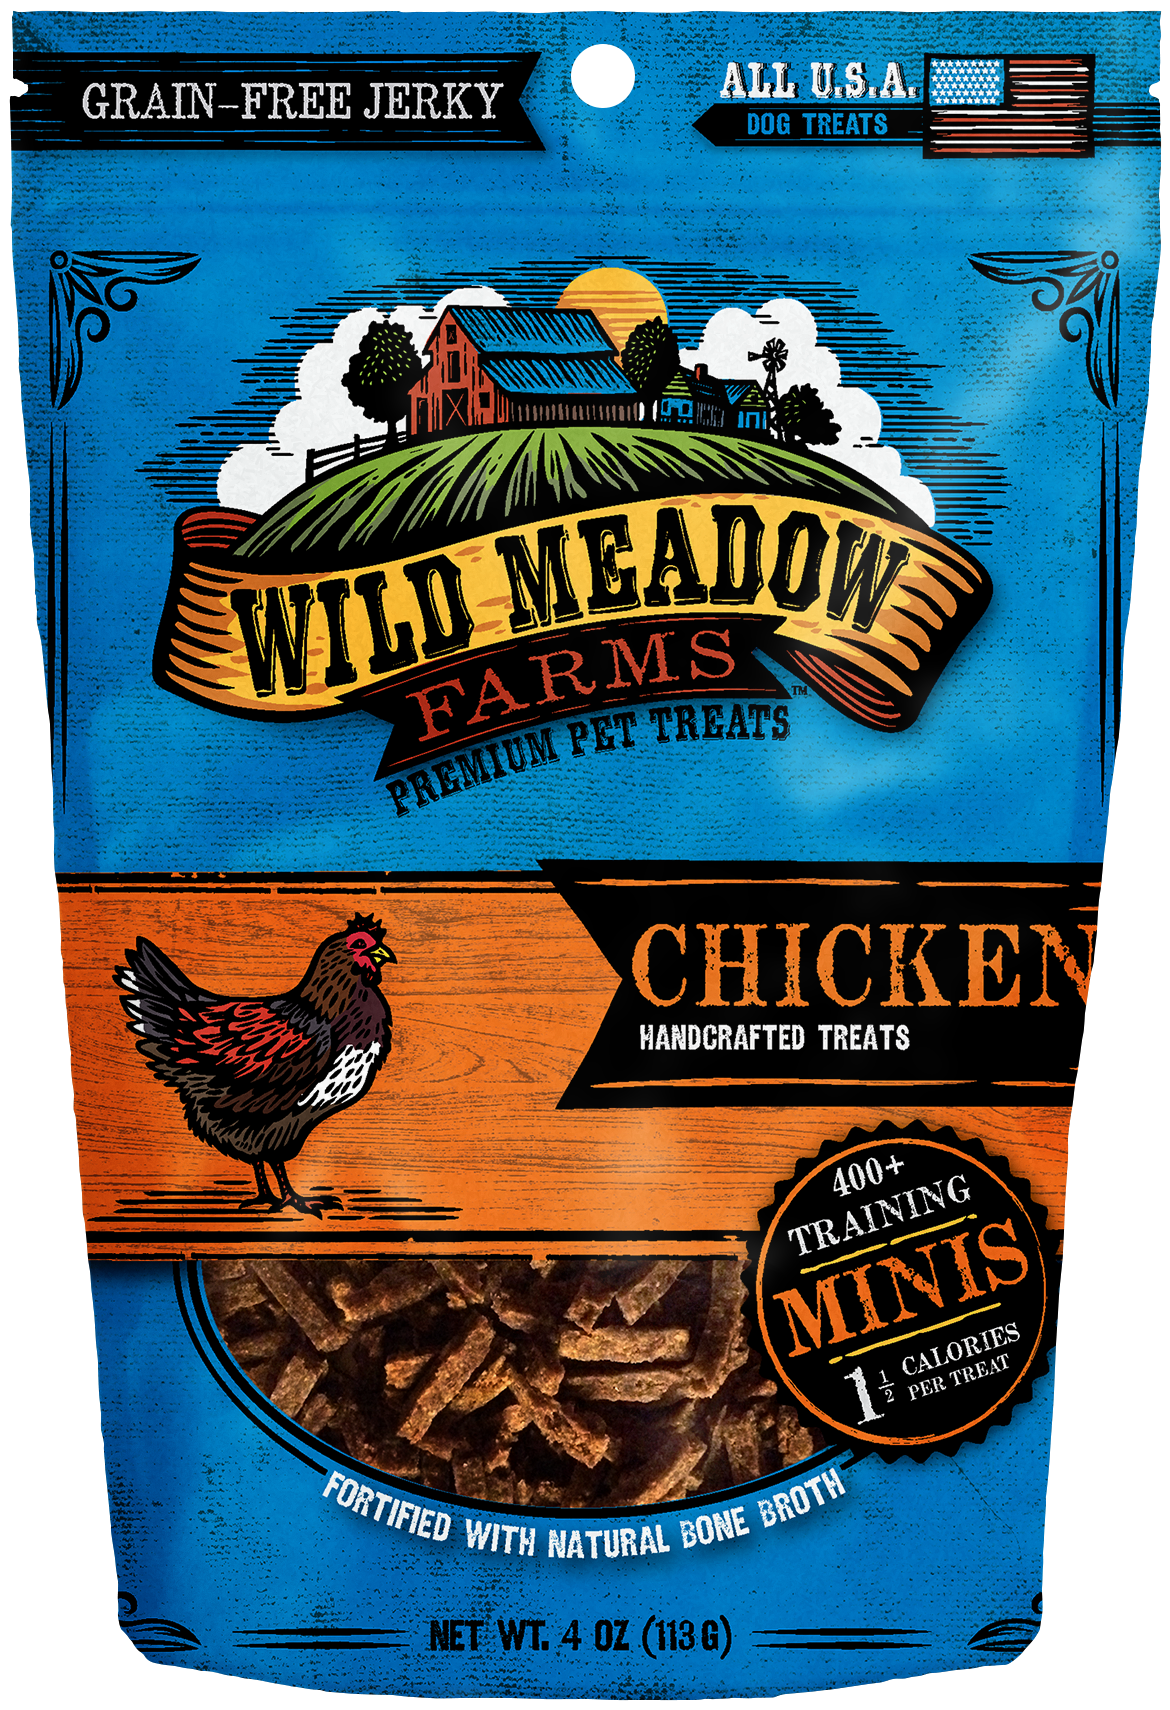 Chicken Minis - USA Made Training Size Dog Treats 4oz by Wild Meadow Farms